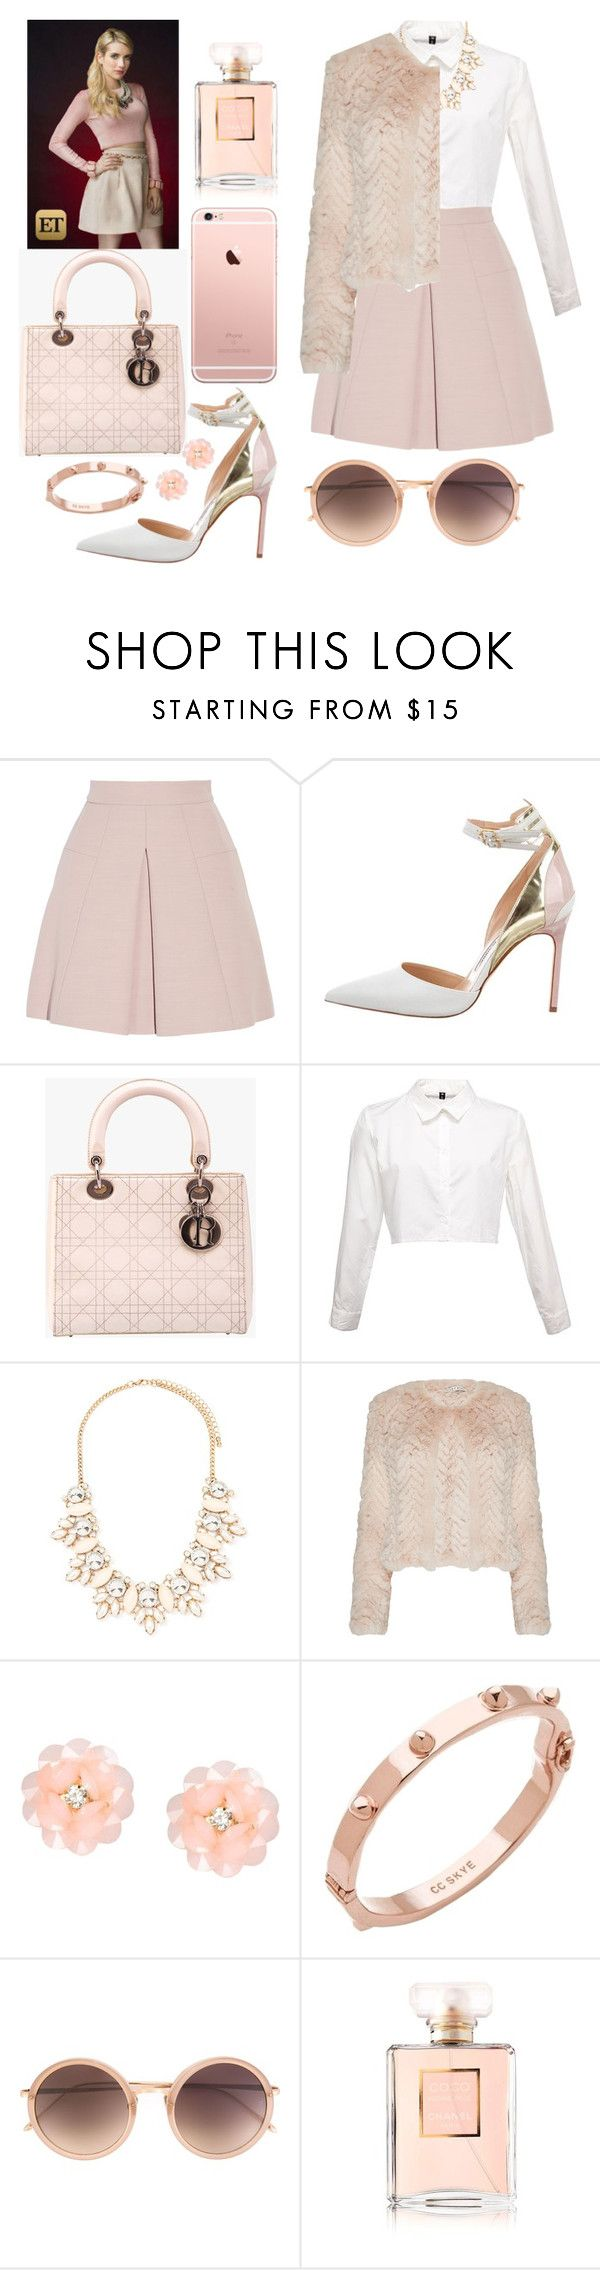 """SCREAM QUEENS - CHANEL OBERLIN inspired outfit"" by elisehart ❤ liked on Polyvore featuring Alexander McQueen, Manolo Blahnik, Christian Dior, Forever 21, Alice + Olivia, Dettagli, CC SKYE, Linda Farrow, Chanel and ScreamQueens"